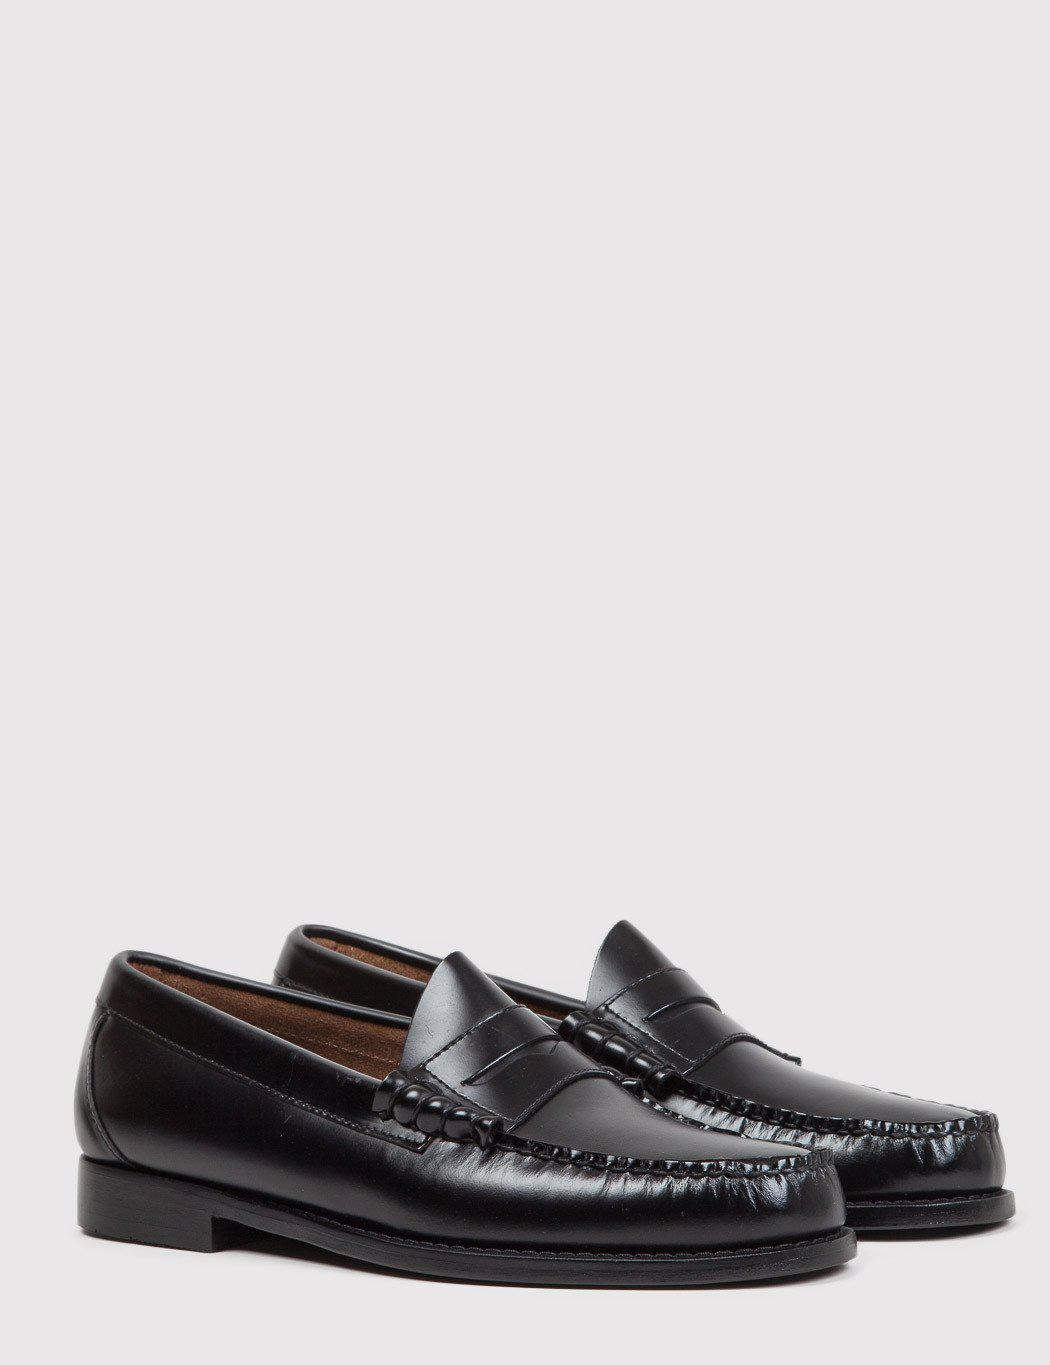 G.H.BASS Leather Bass Weejun Larson Penny Loafers in Black ...